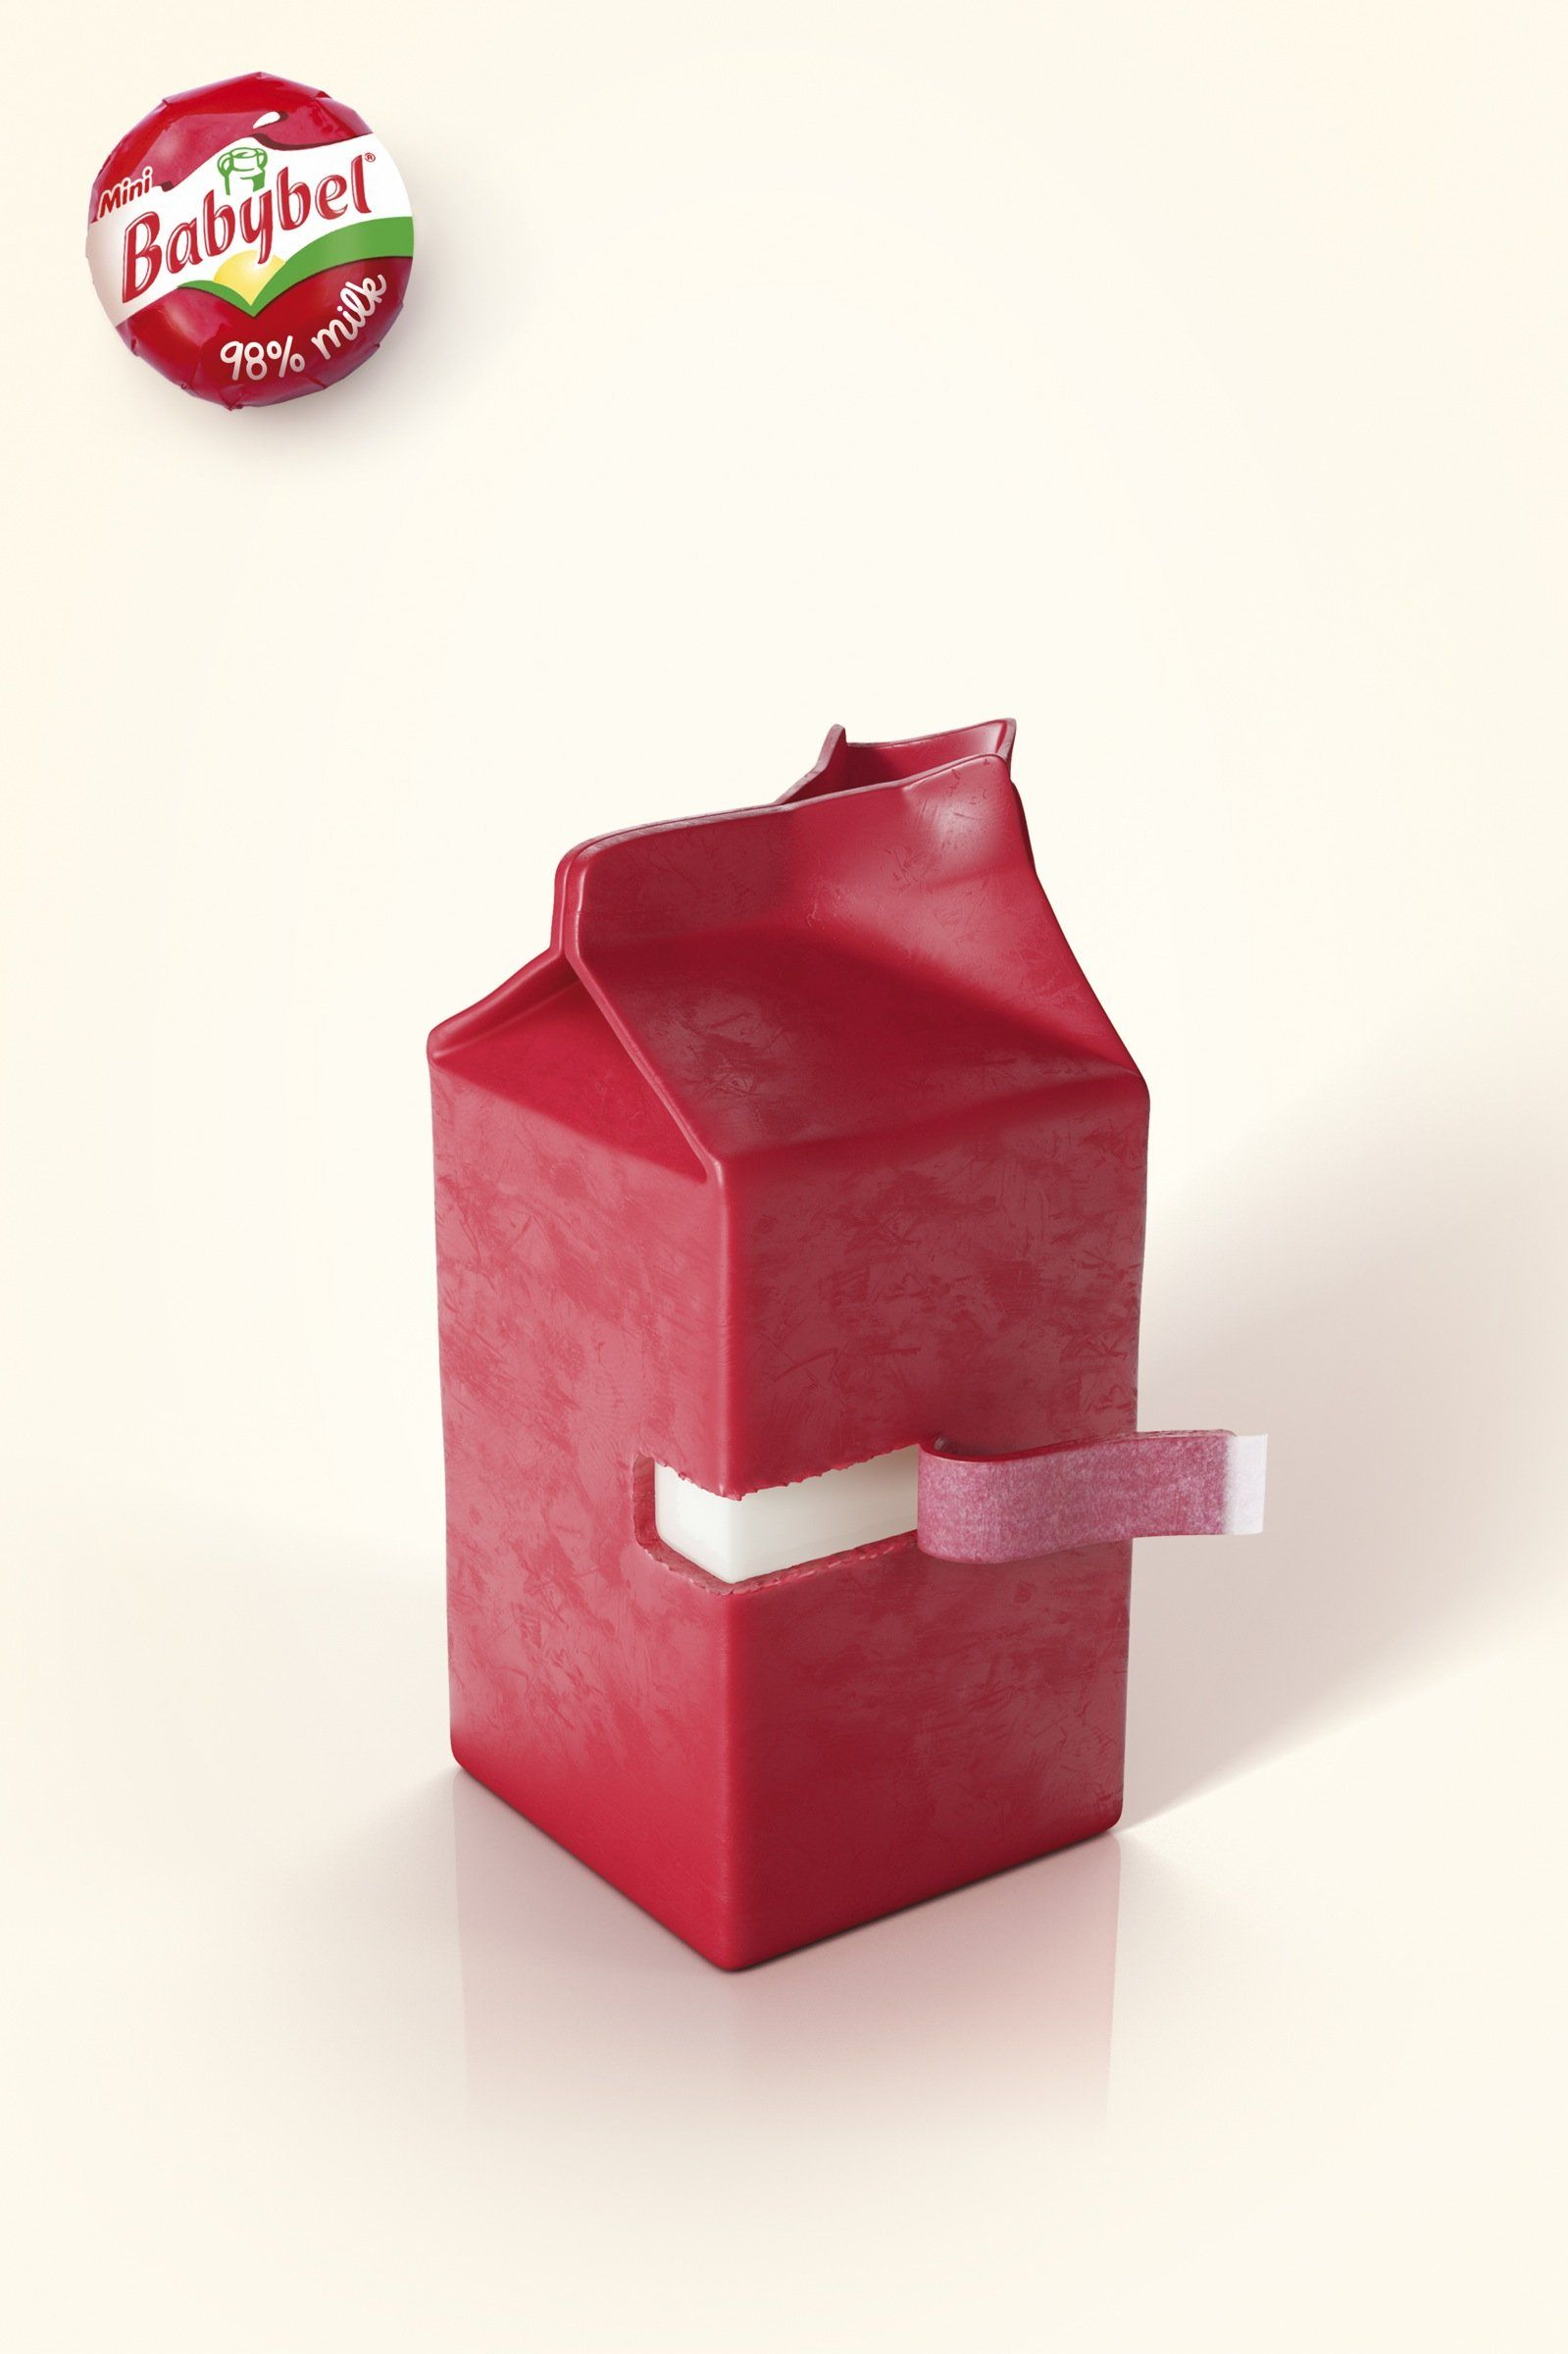 Babybel - 98% milk. #advertising #print #ad | Advertising ...